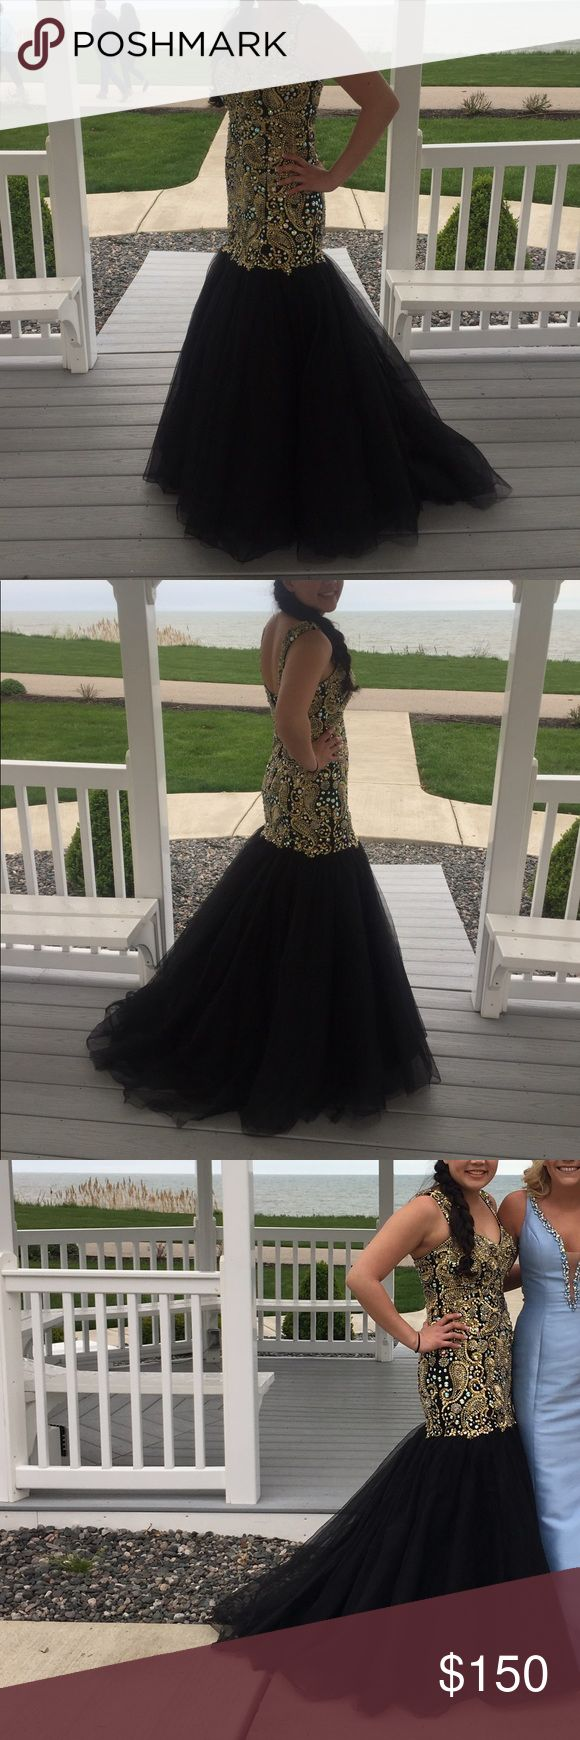 Prom dress Smoke free home! Any questions just ask! I'm 5'4 and wore 3 inch heels Panoply Dresses Prom